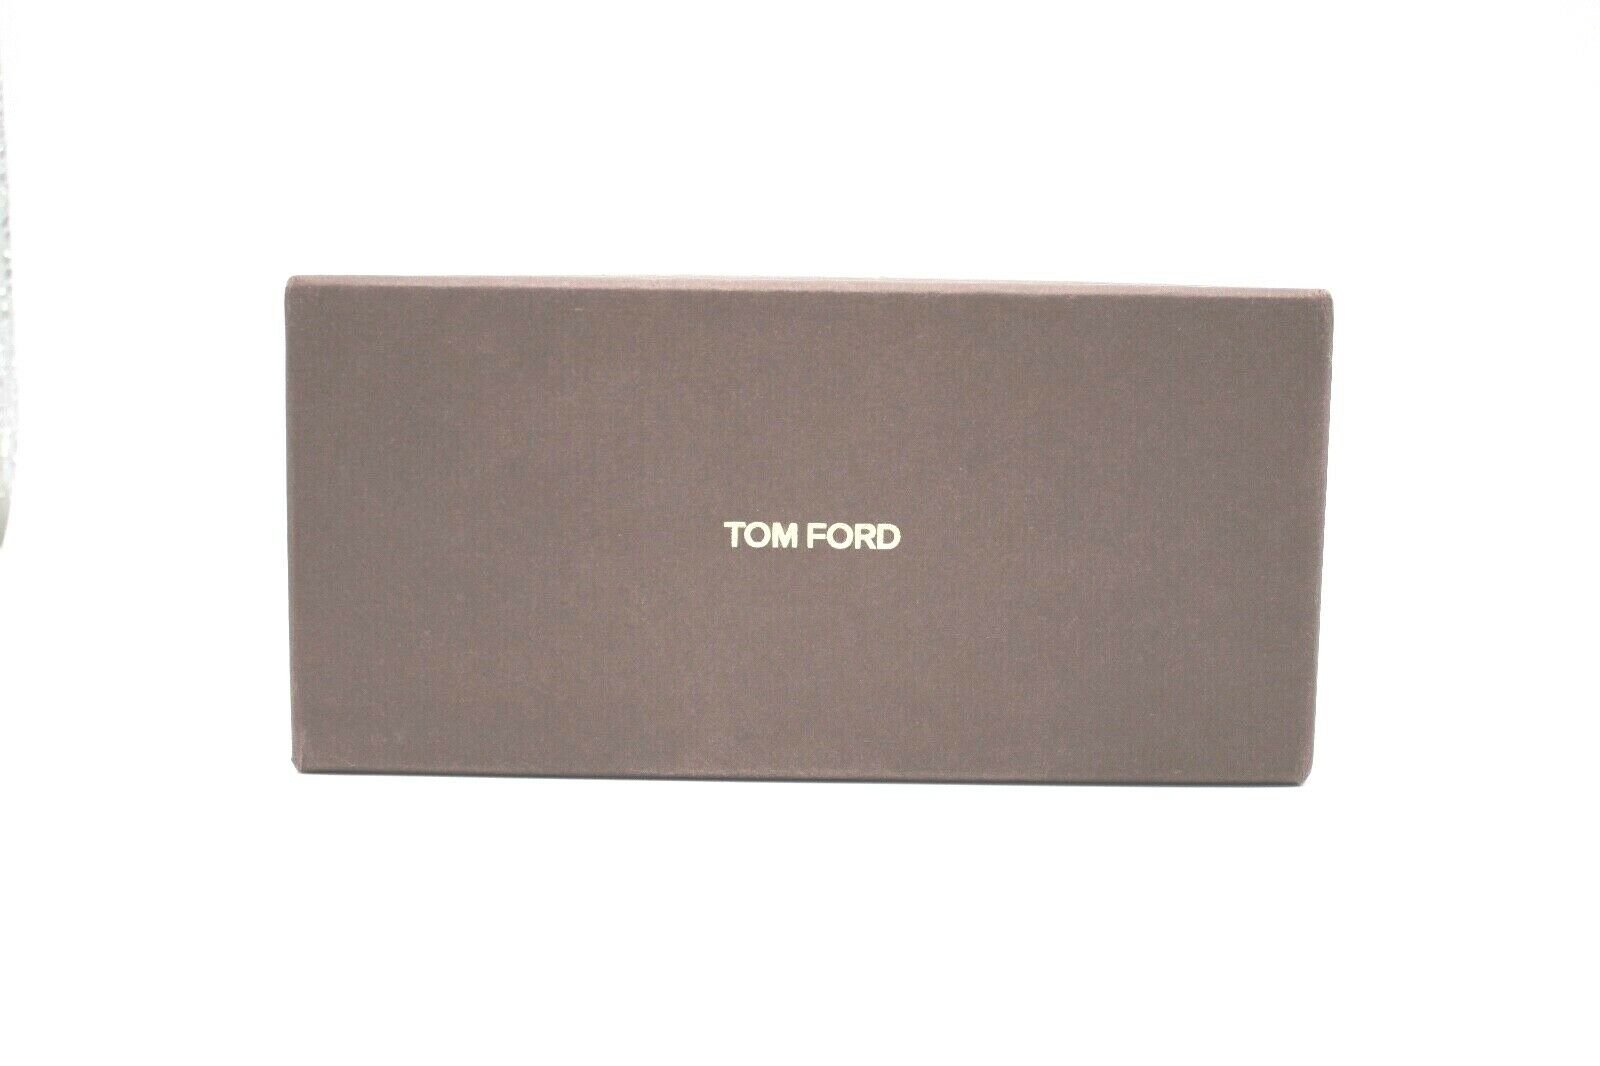 Tom Ford Empty Gift Storage Sunglasses Box - Mydesigneroptic